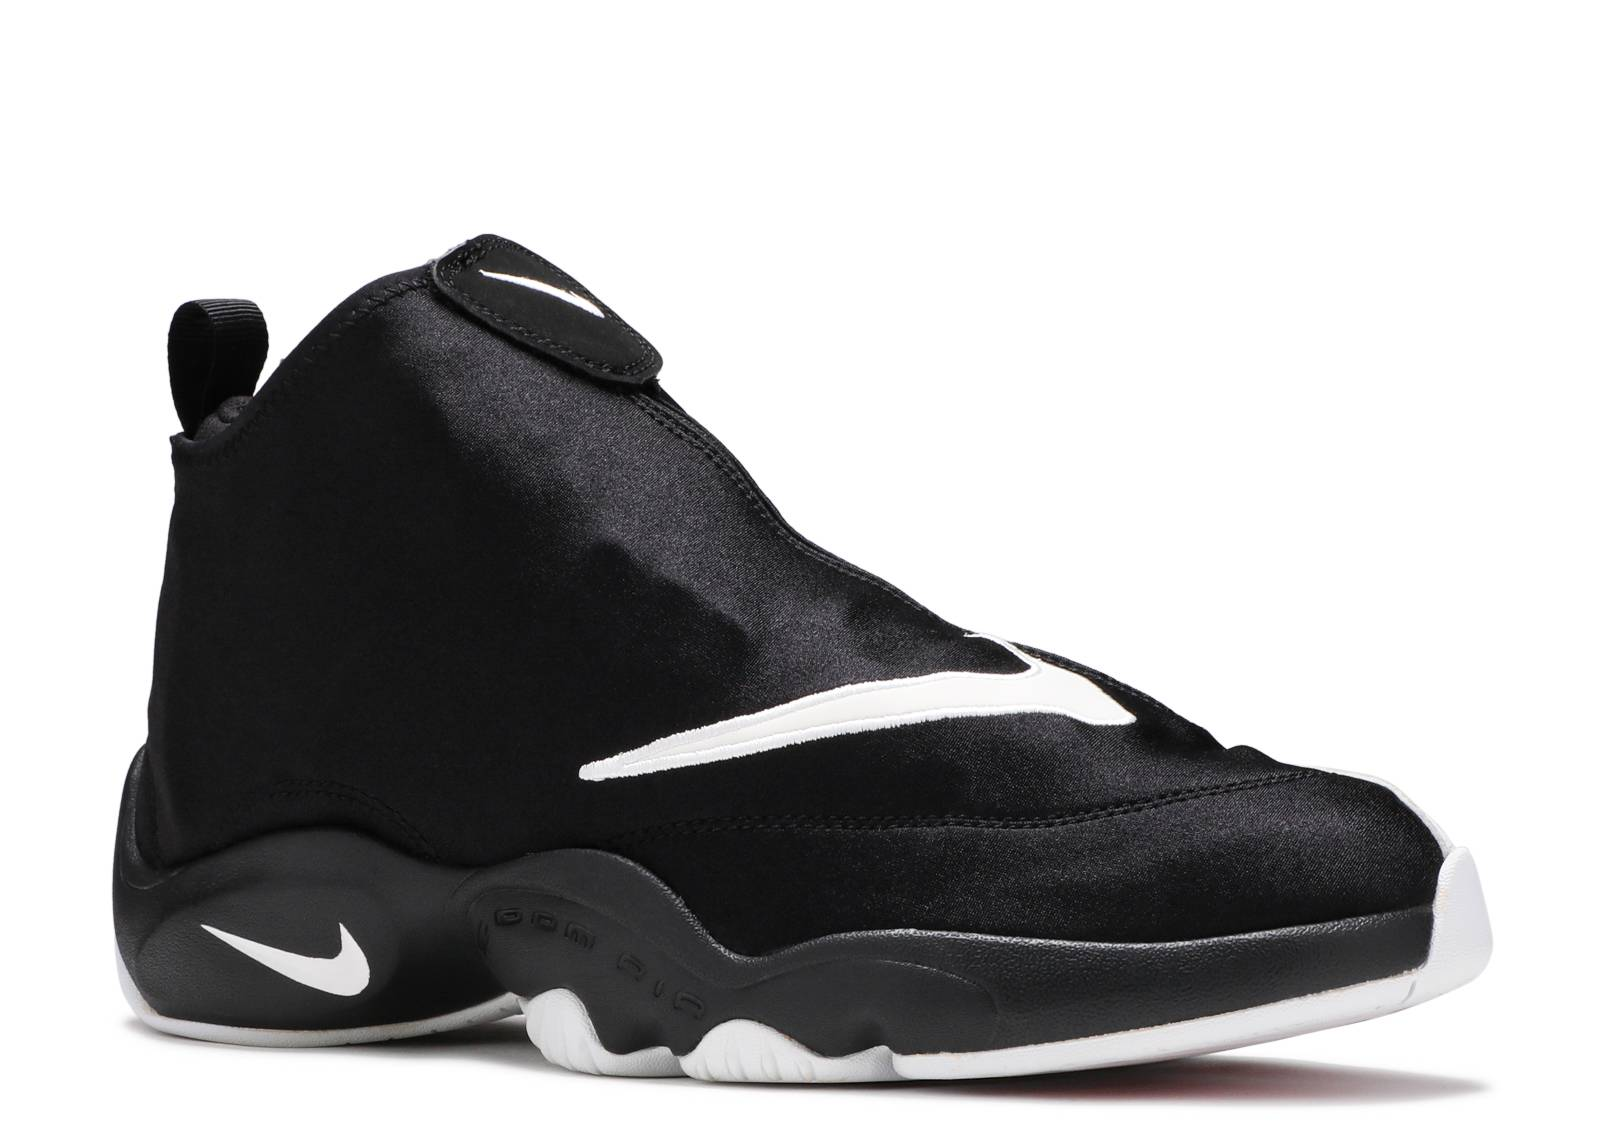 8adccdf2ba011 ... air zoom flight the glove gary payton nike 616772 001 black white  university red flight club